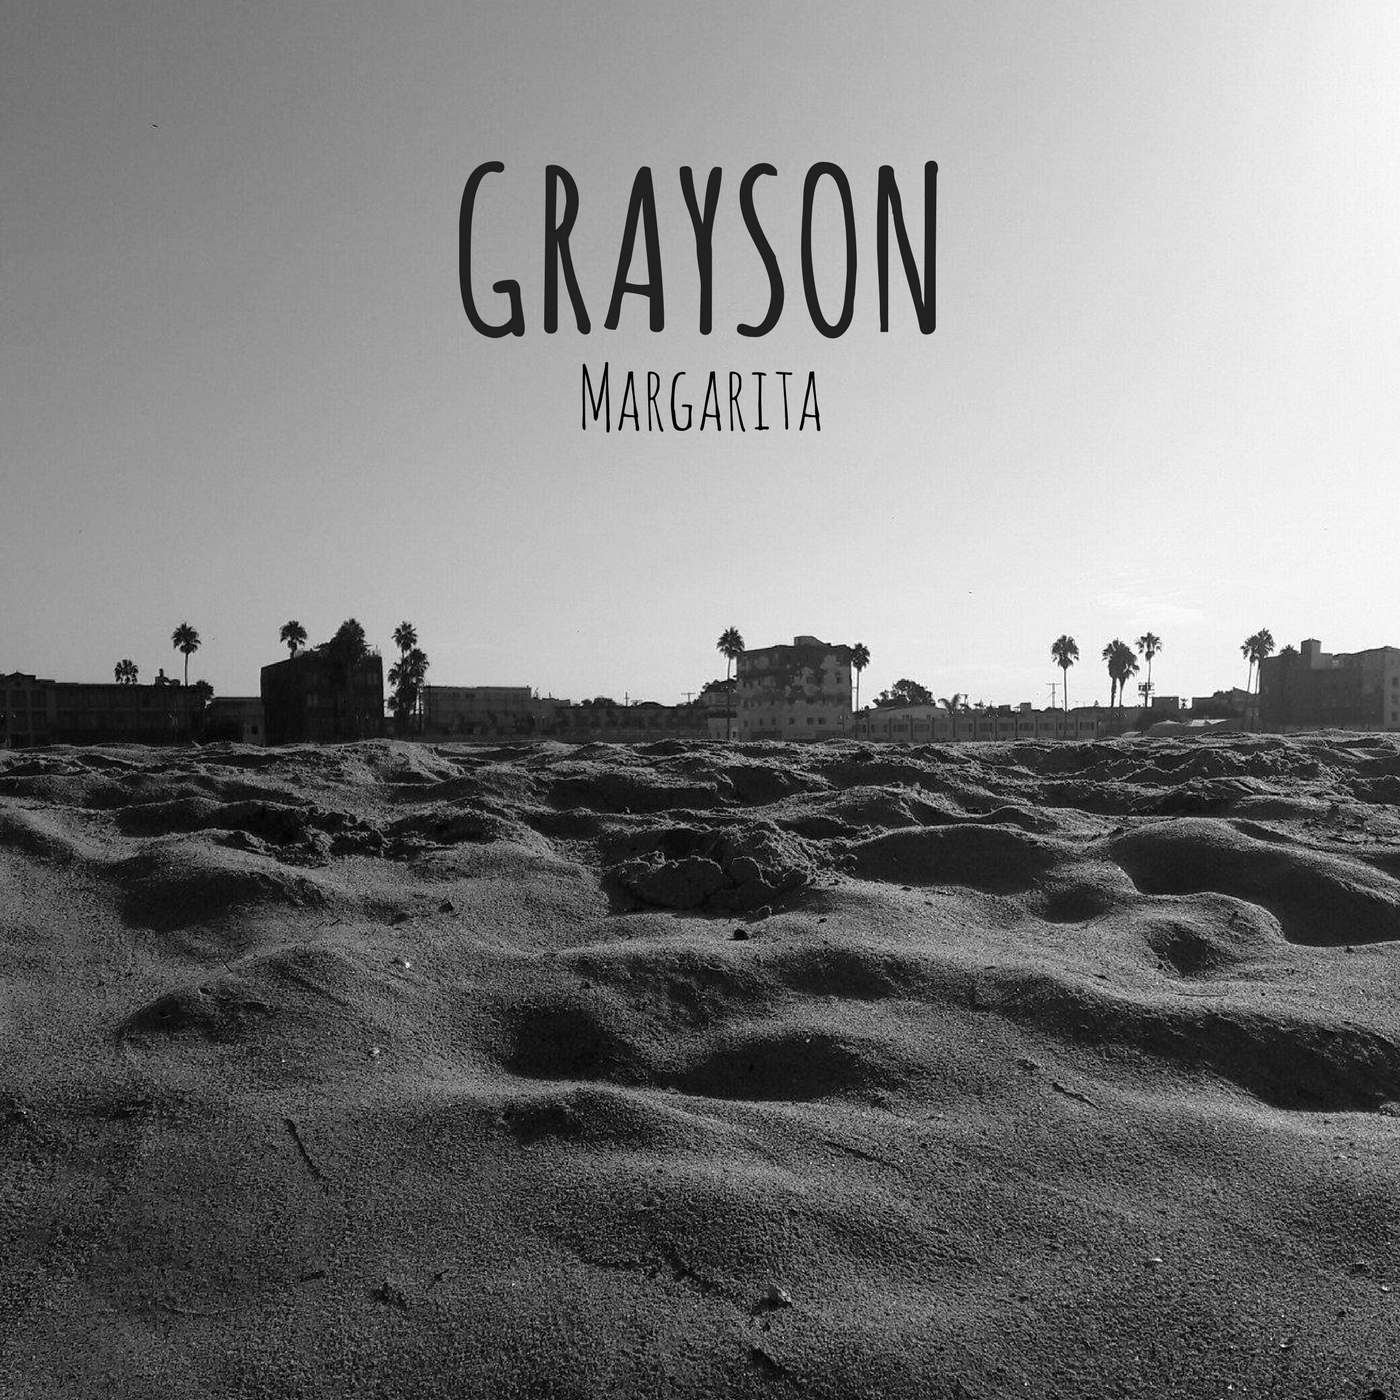 GRAYSON - Margarita Single Artwork.jpg